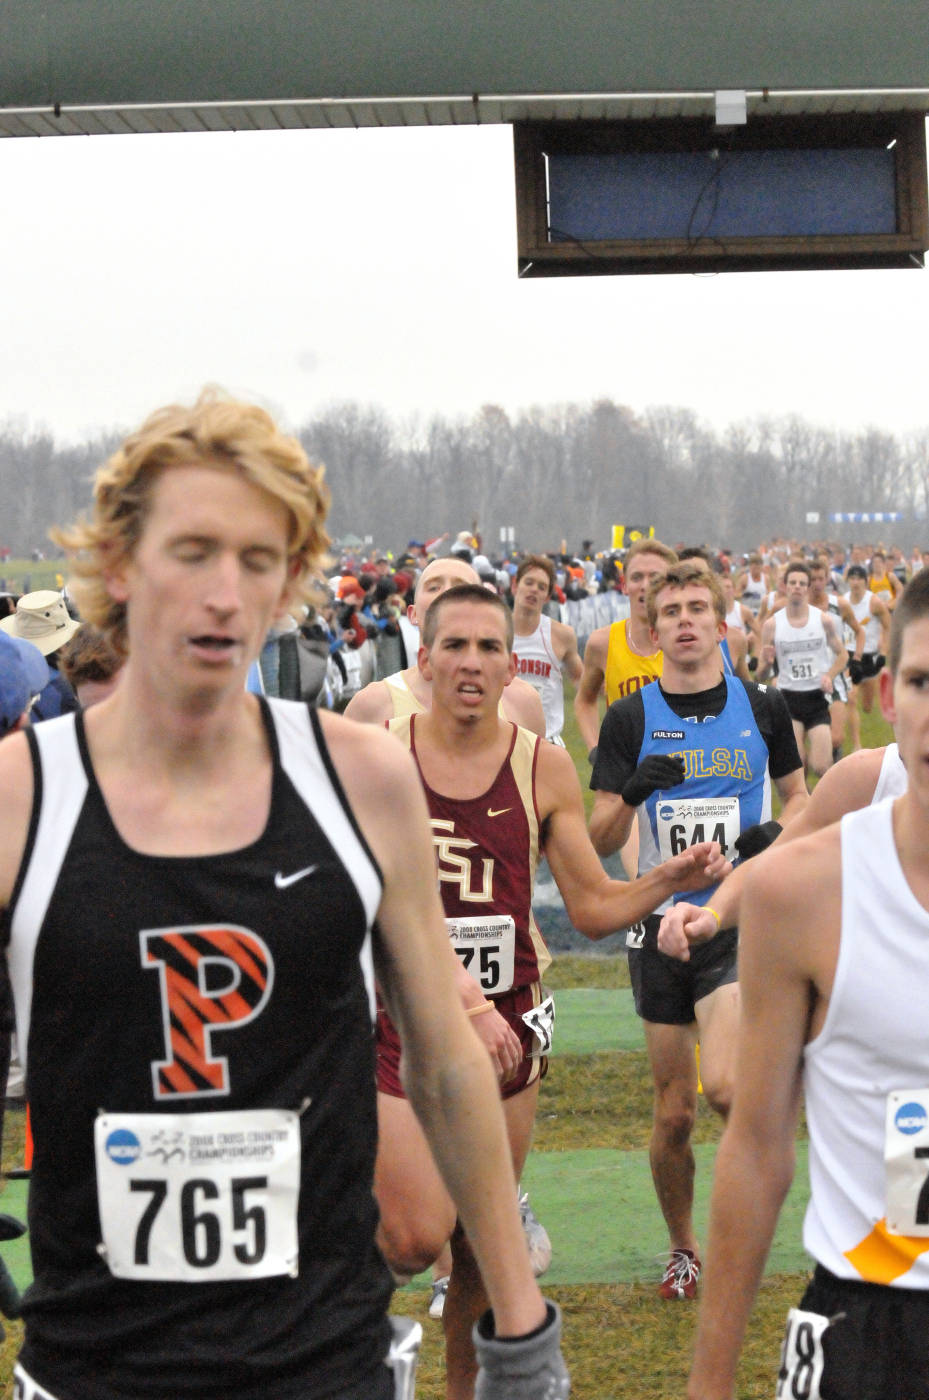 Junior Daniel Roberts at the 2008 NCAA Cross Country Nationals.